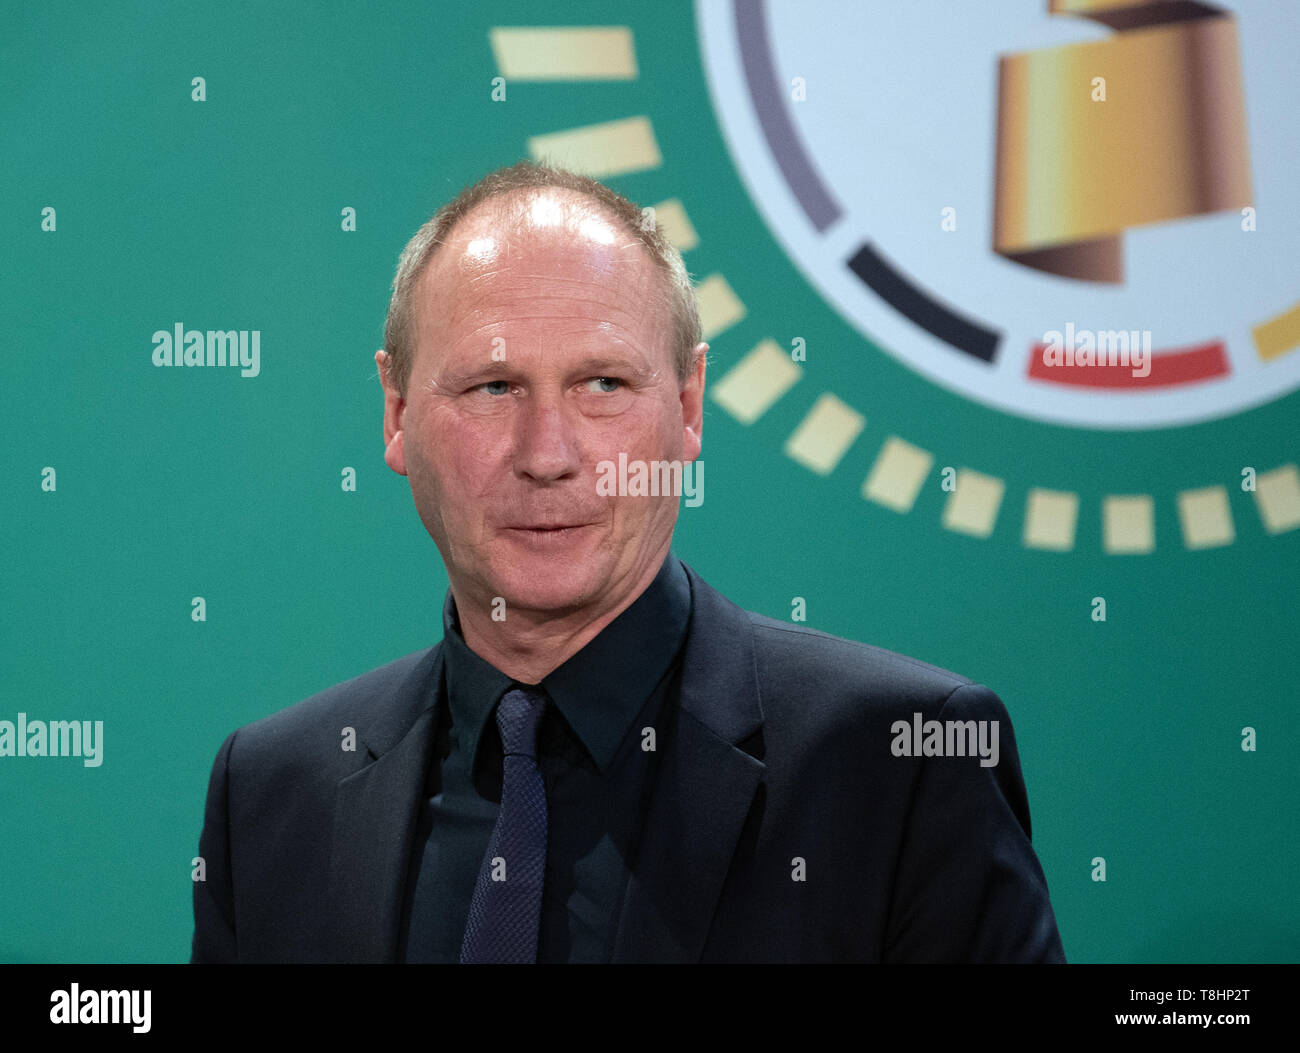 10 May 2019, Berlin: Soccer: DFB Cup, Cup Handover of the DFB Cup. Perry Bräutigam, former national goalkeeper of the GDR national team and current goalkeeper scout at RB Leipzig. Photo: Soeren Stache/dpa - Stock Image